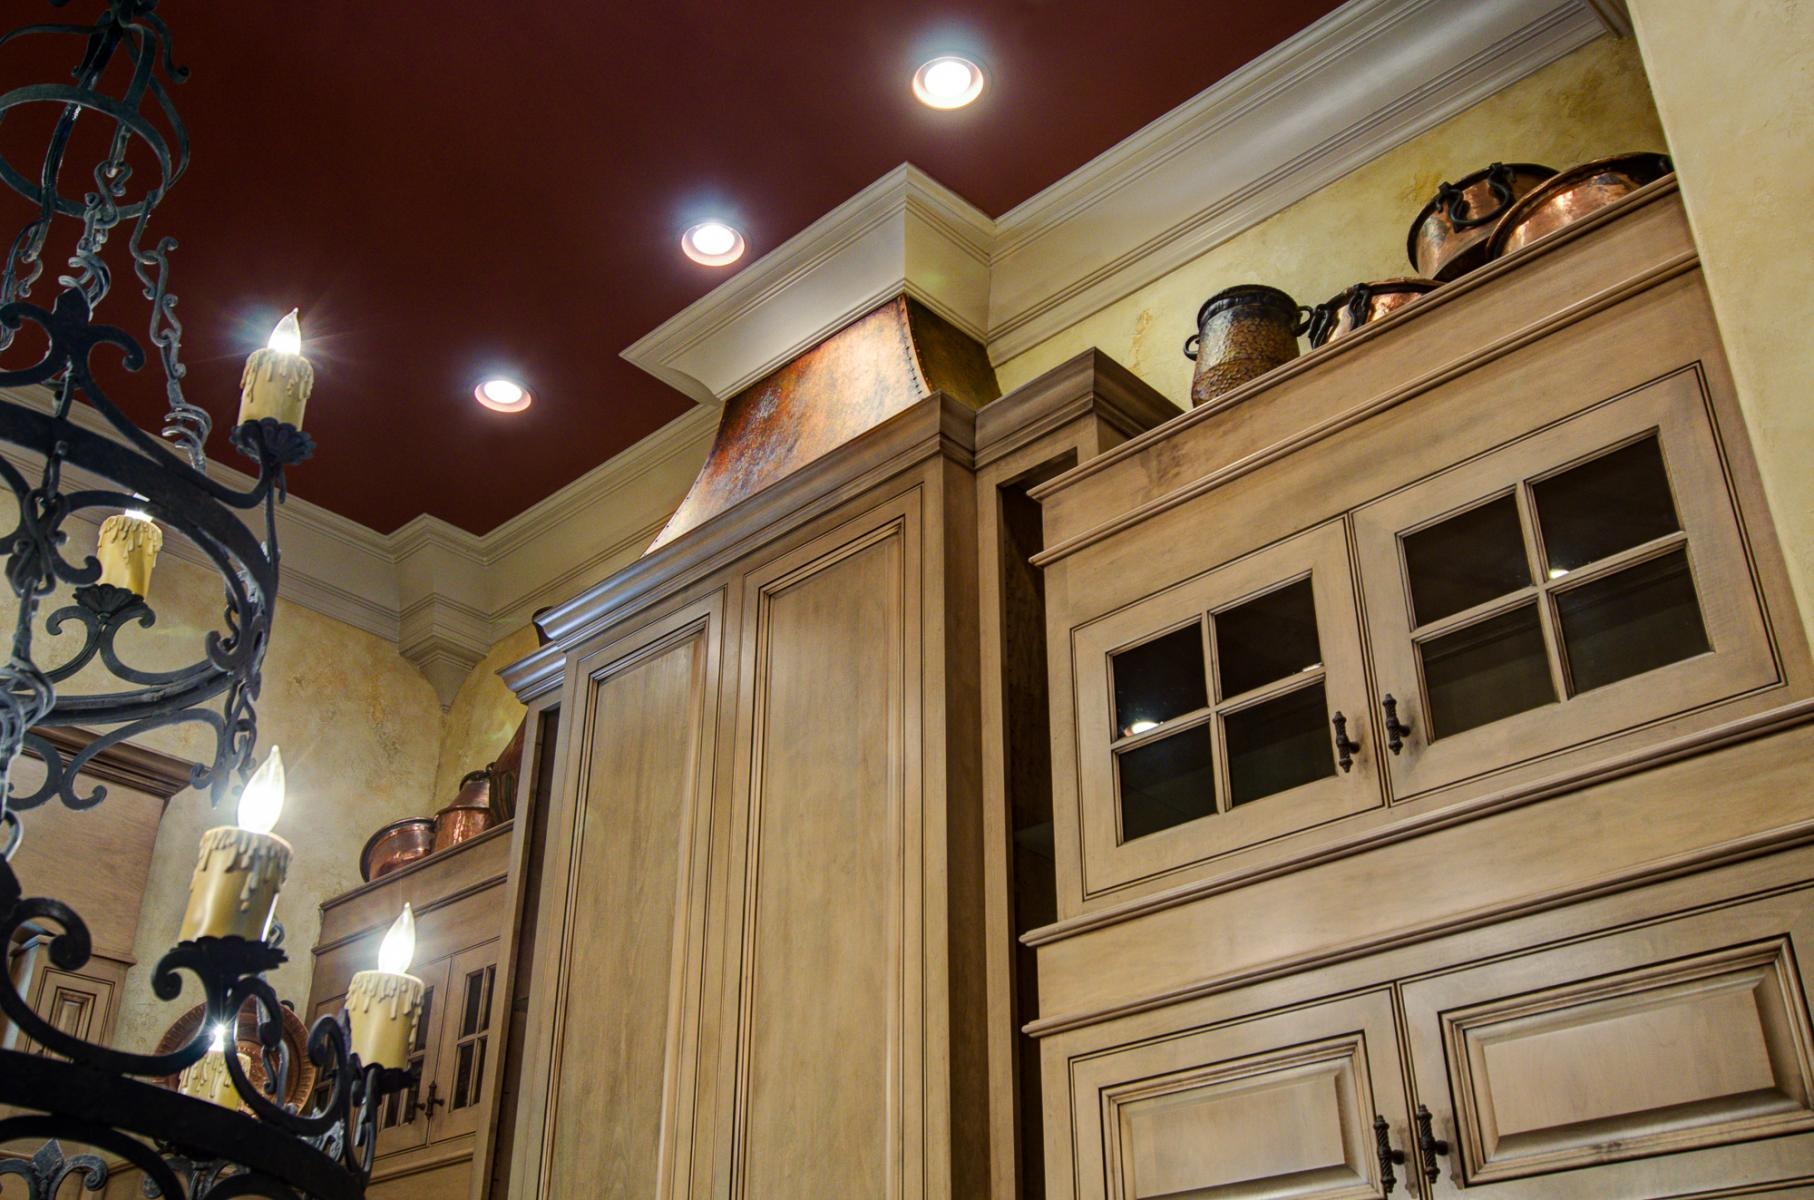 Tuscan colored plaster walls set against warm cabinet glazing and accented with a faux copper stove hood.